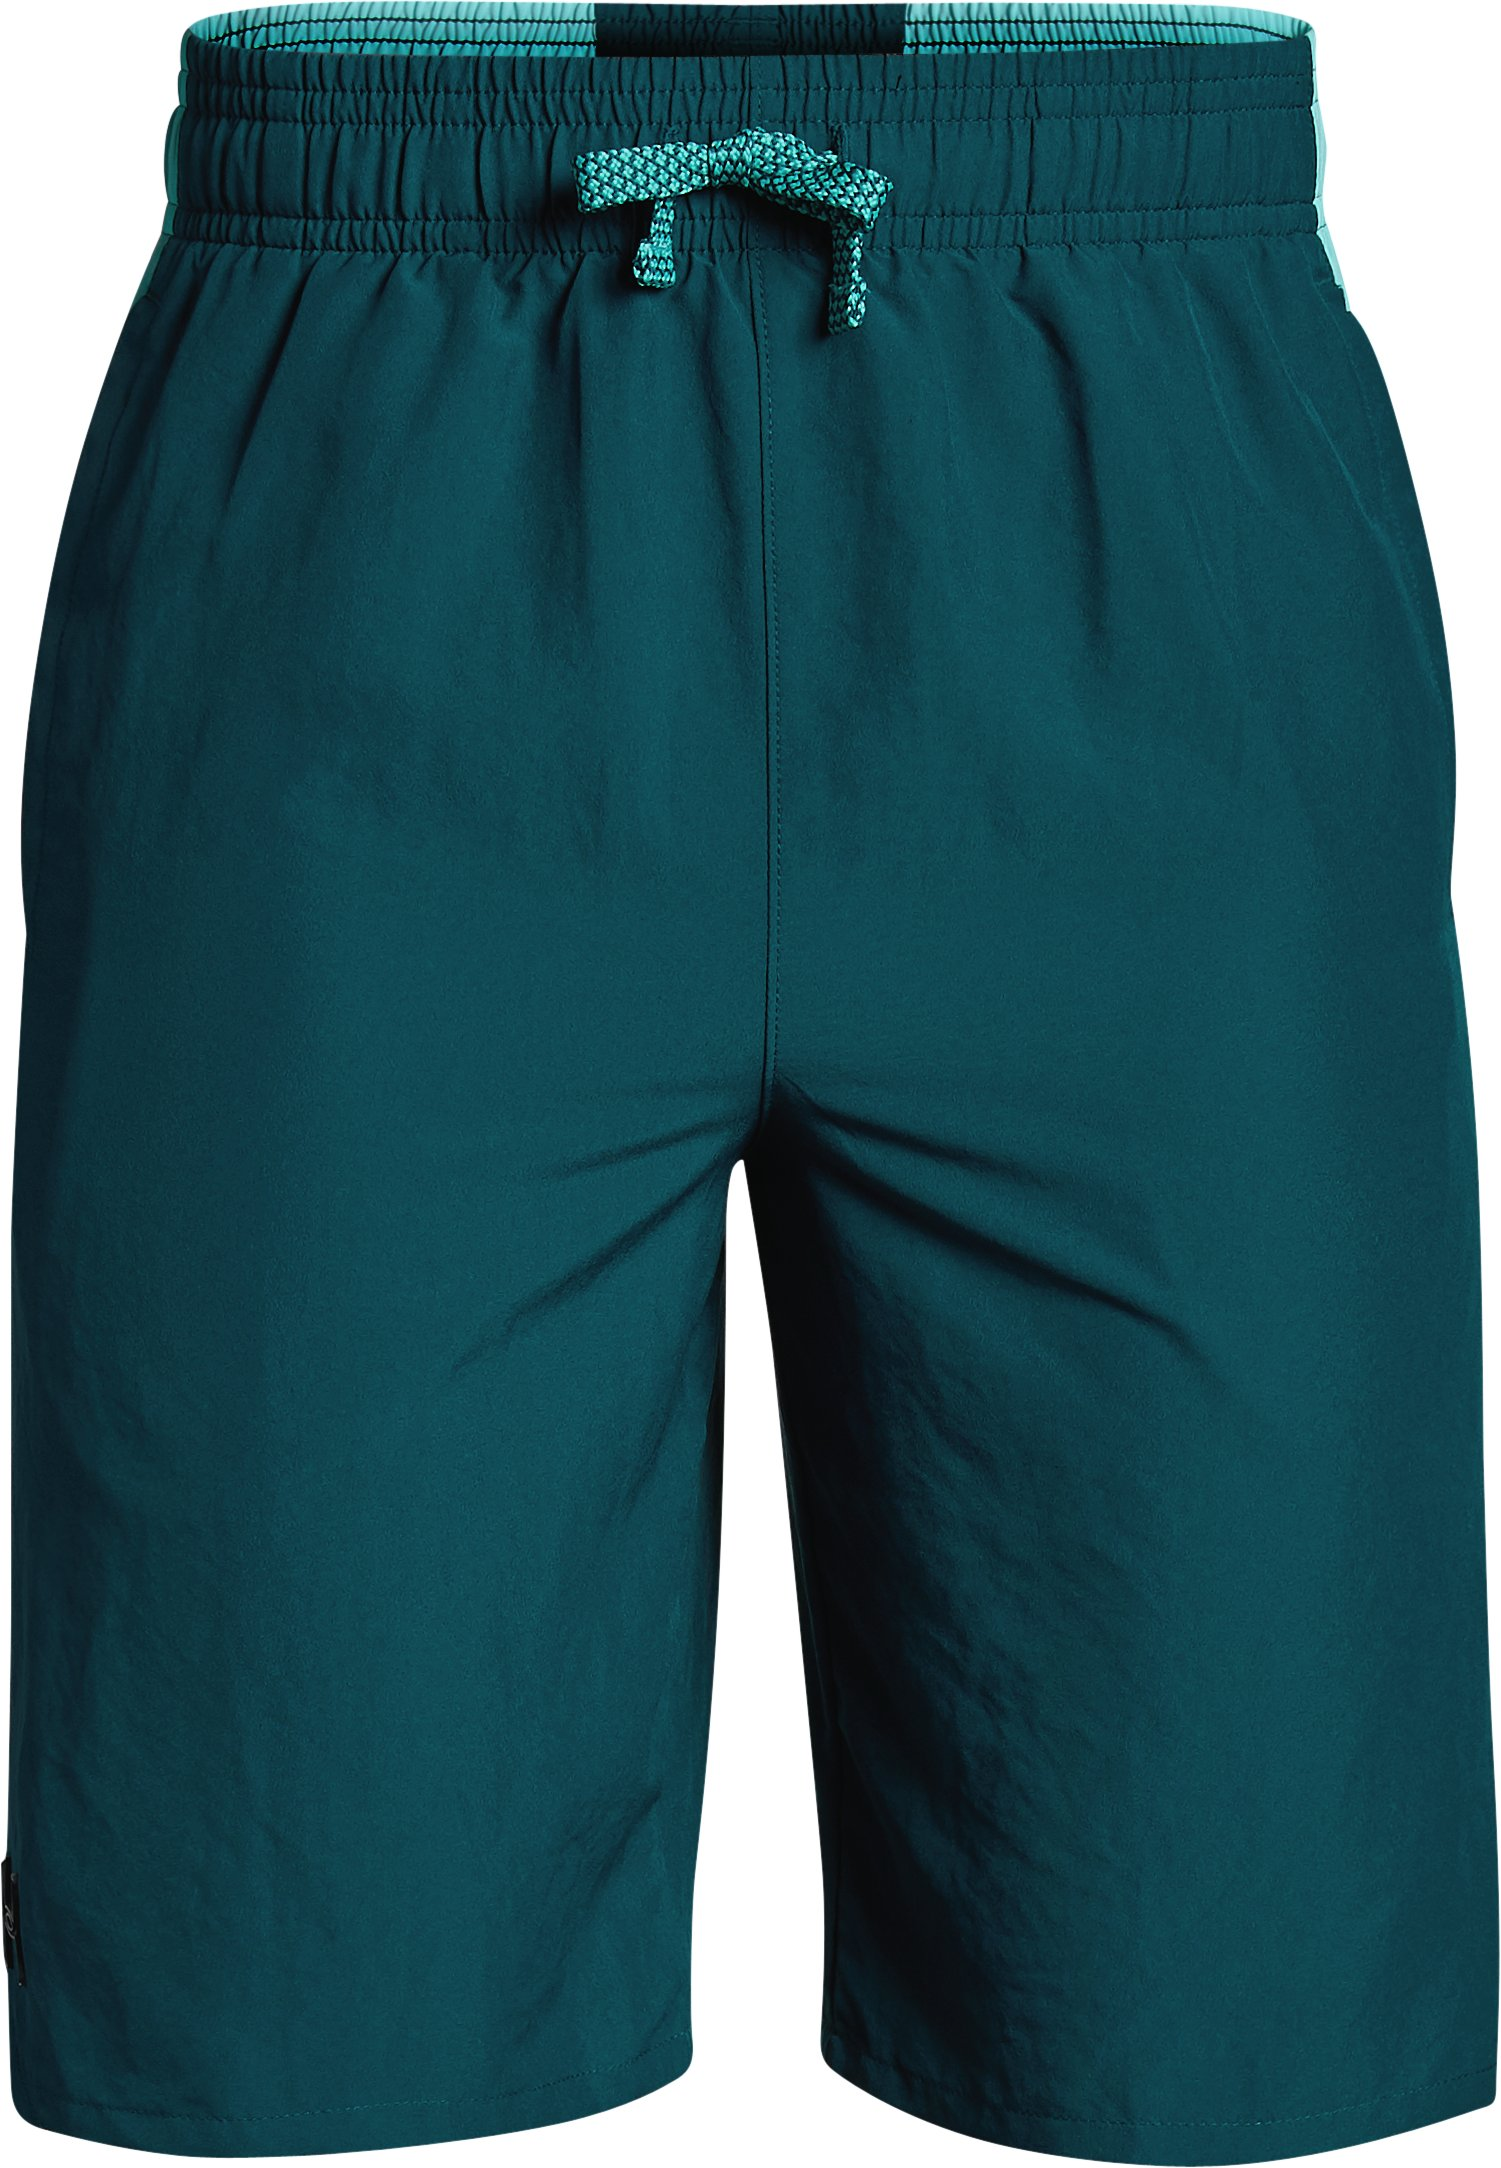 Boys' UA X Level Shorts, TOURMALINE TEAL